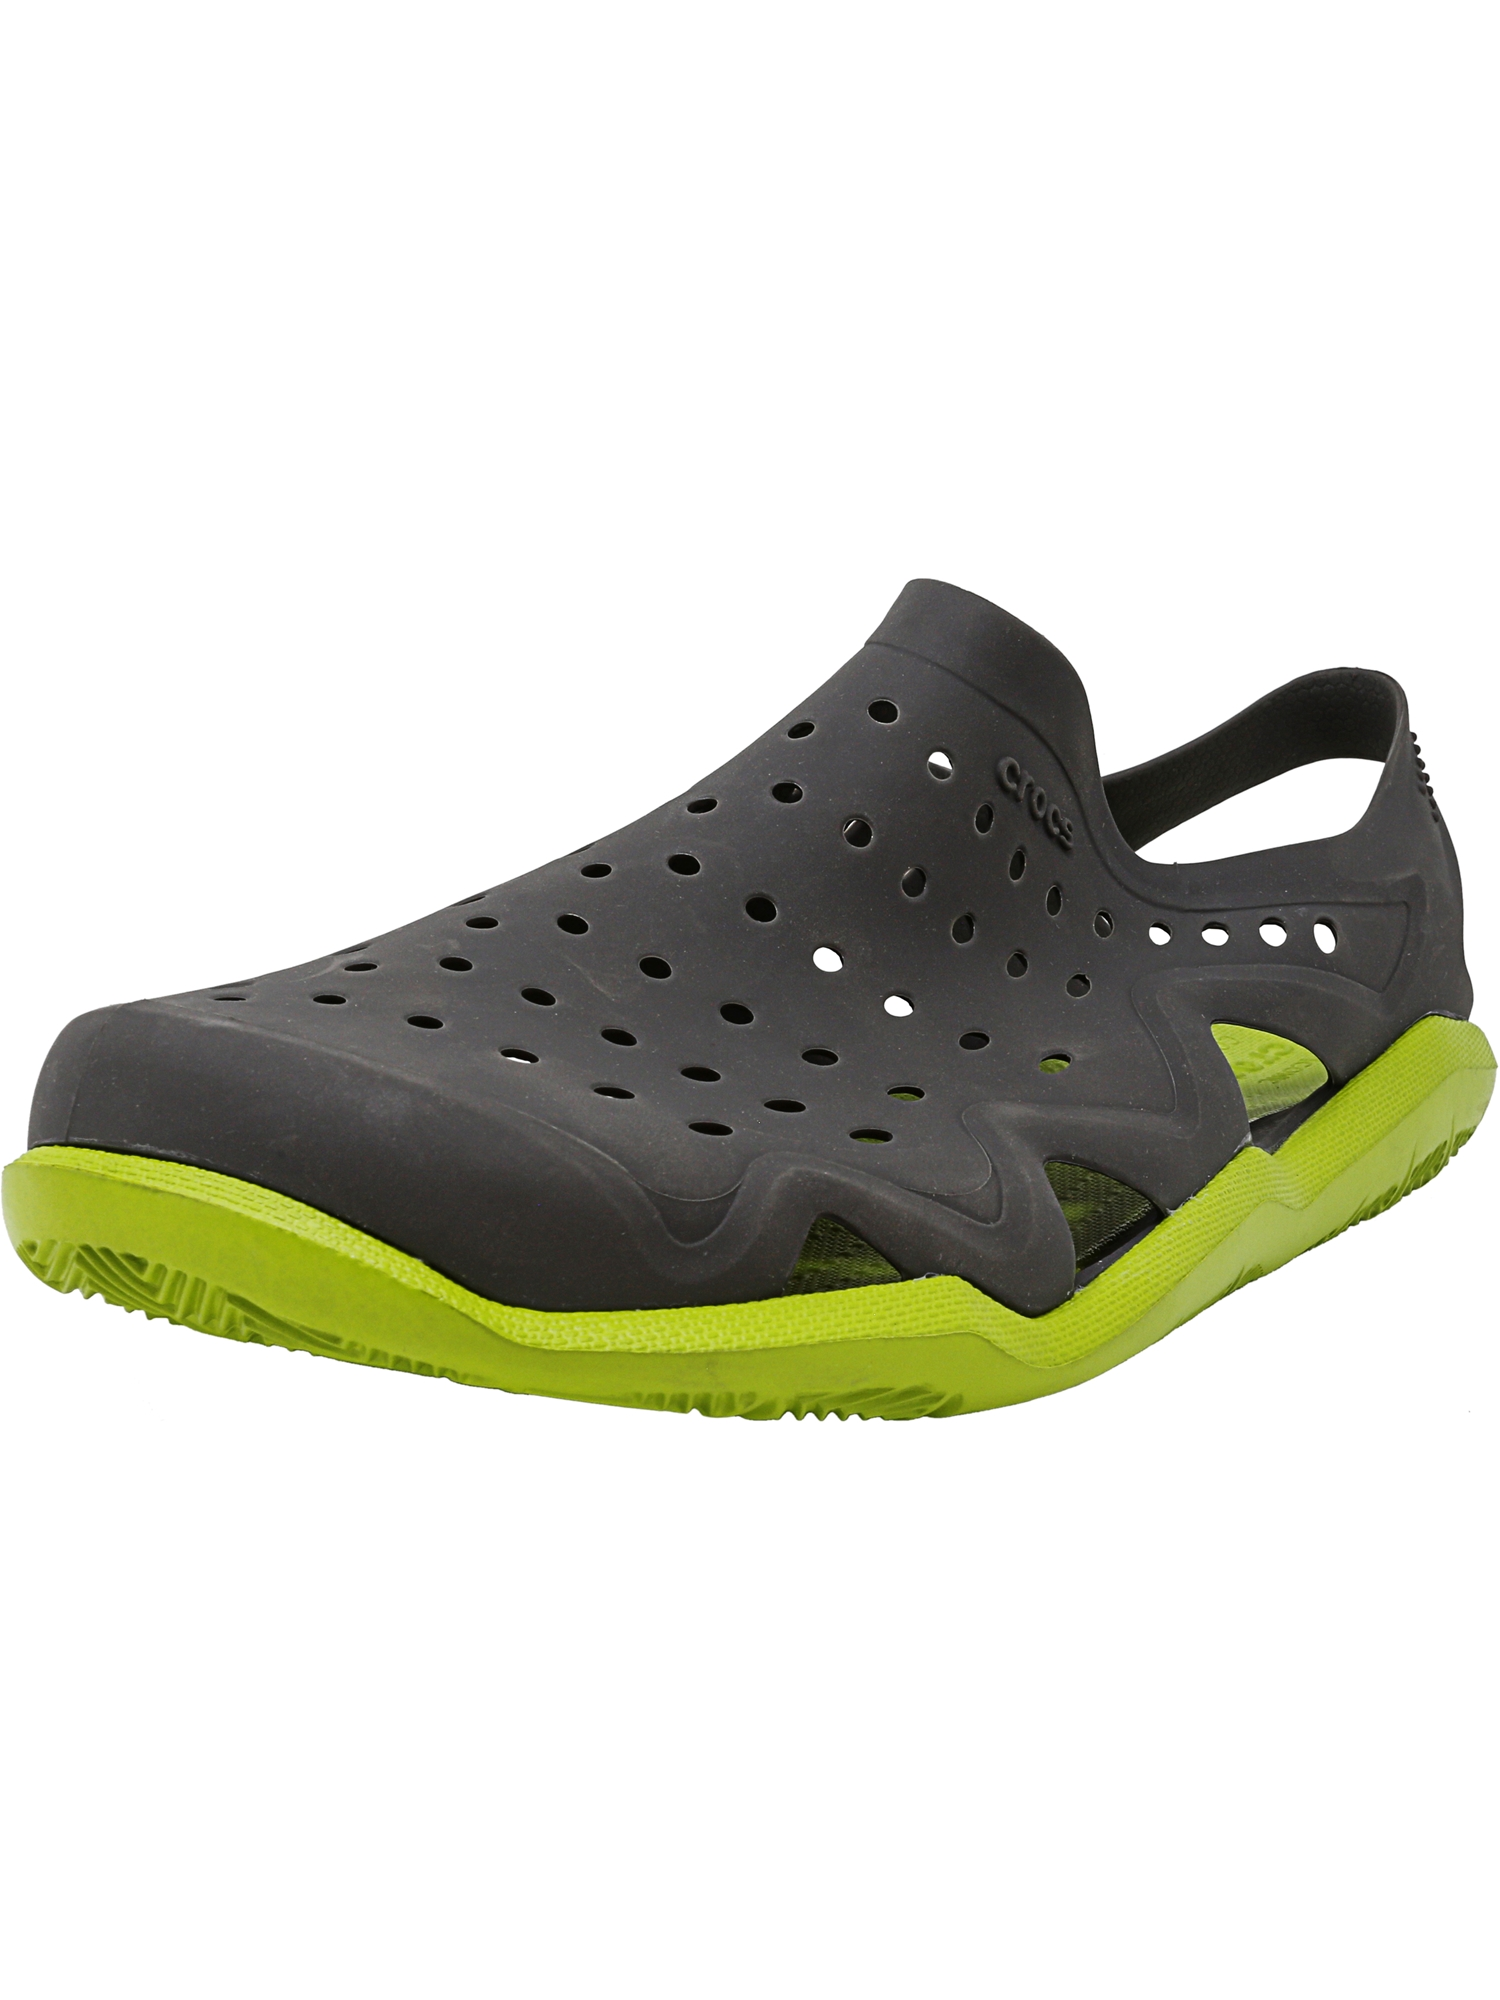 0ca7d0a3ebcc Crocs Men s Swiftwater Wave Graphite   Volt Green Ankle-High Rubber Sandal  - 5M